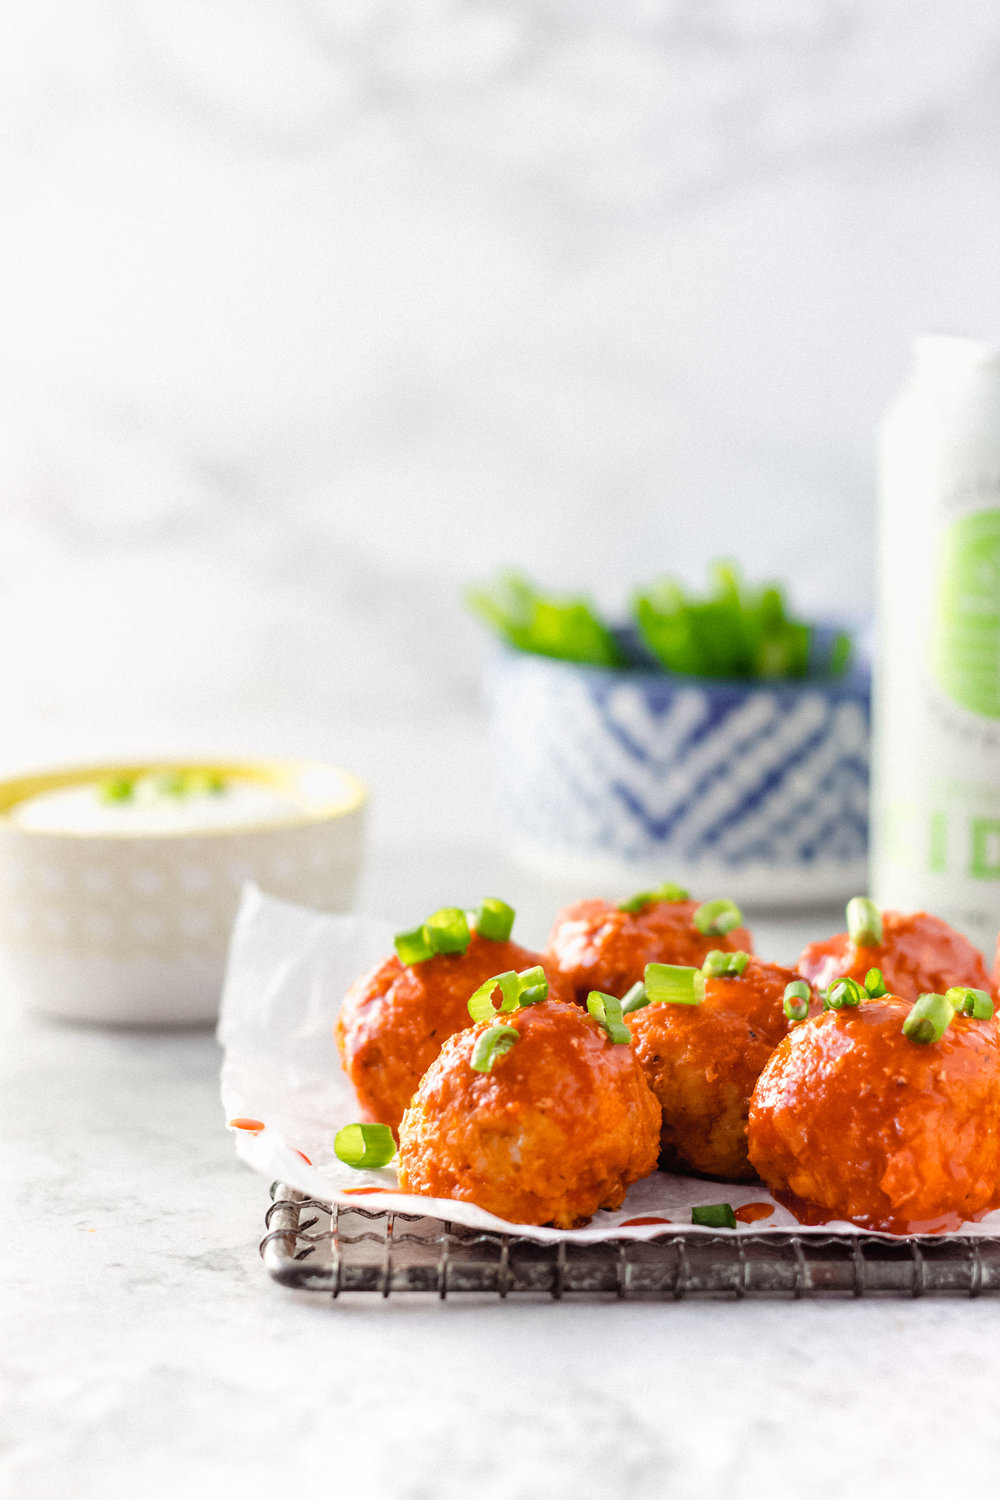 These buffalo chicken meatballs are a great party appetizer or even served as dinner with a side of veggies!